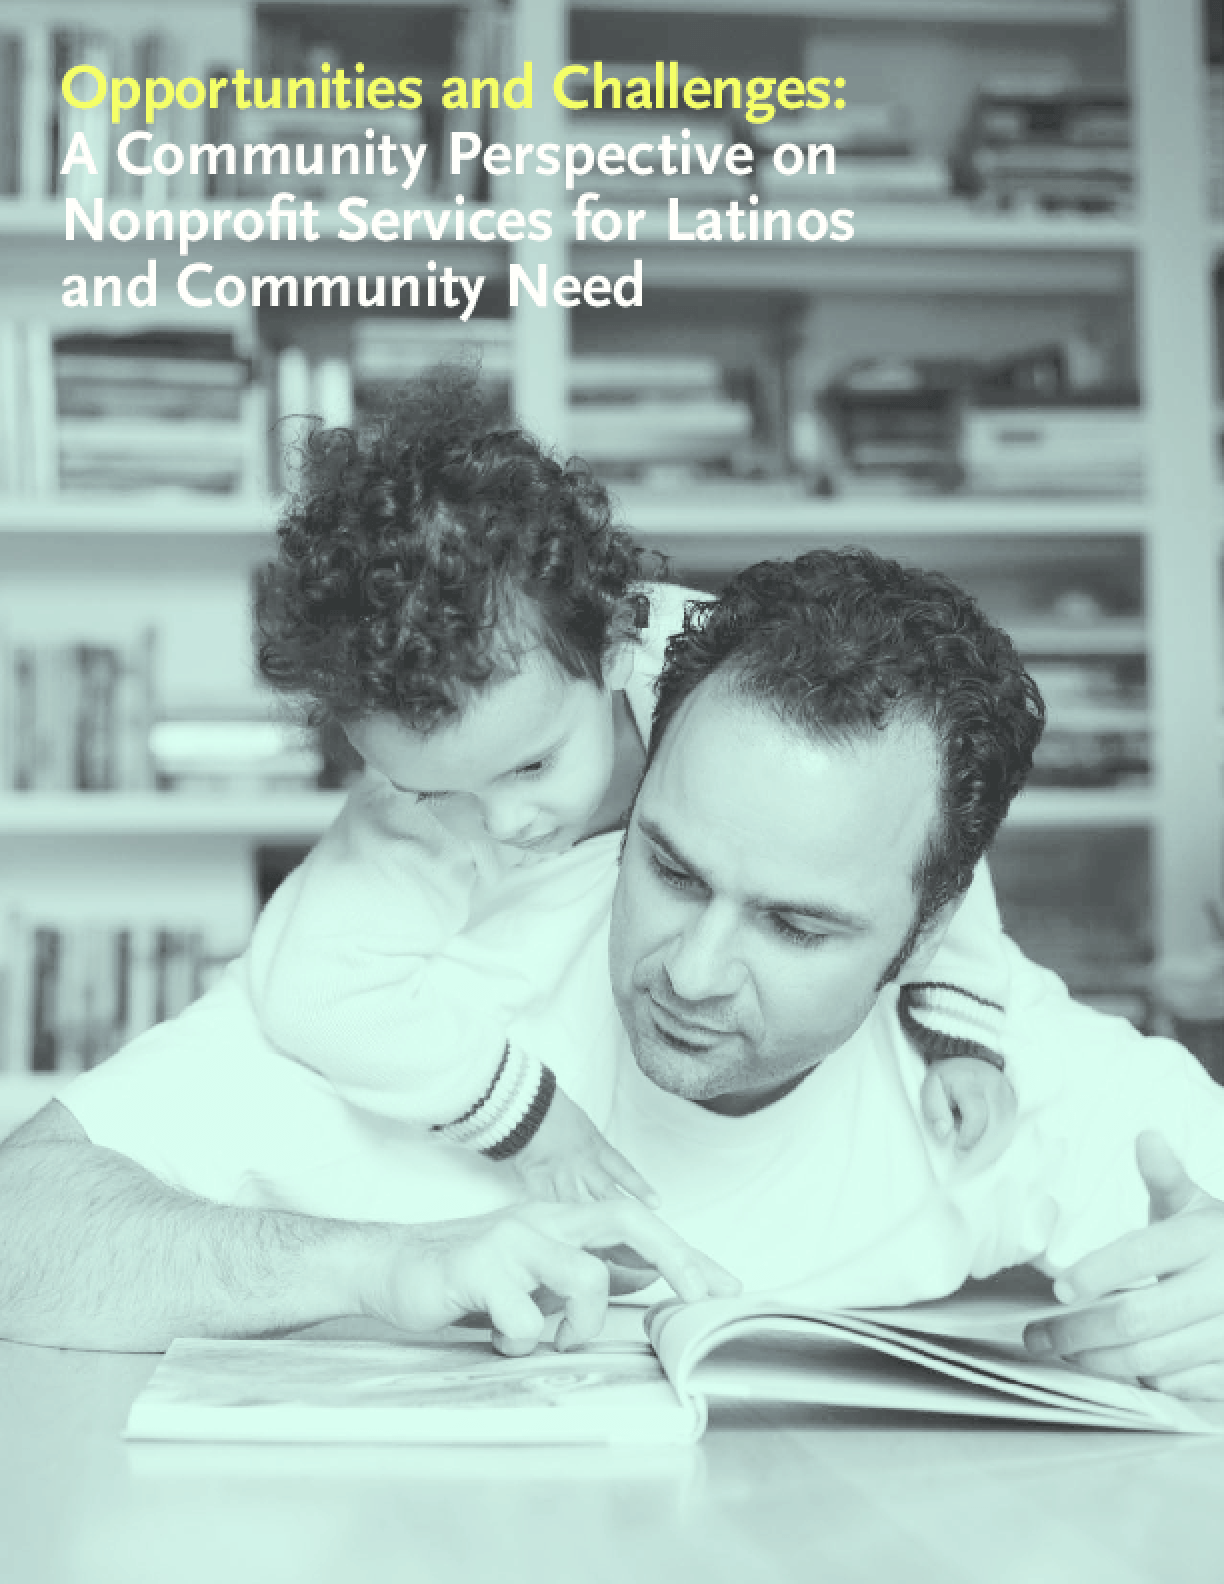 Opportunities and Challenges: A Community Perspective on Nonprofit Services for Latinos and Community Need